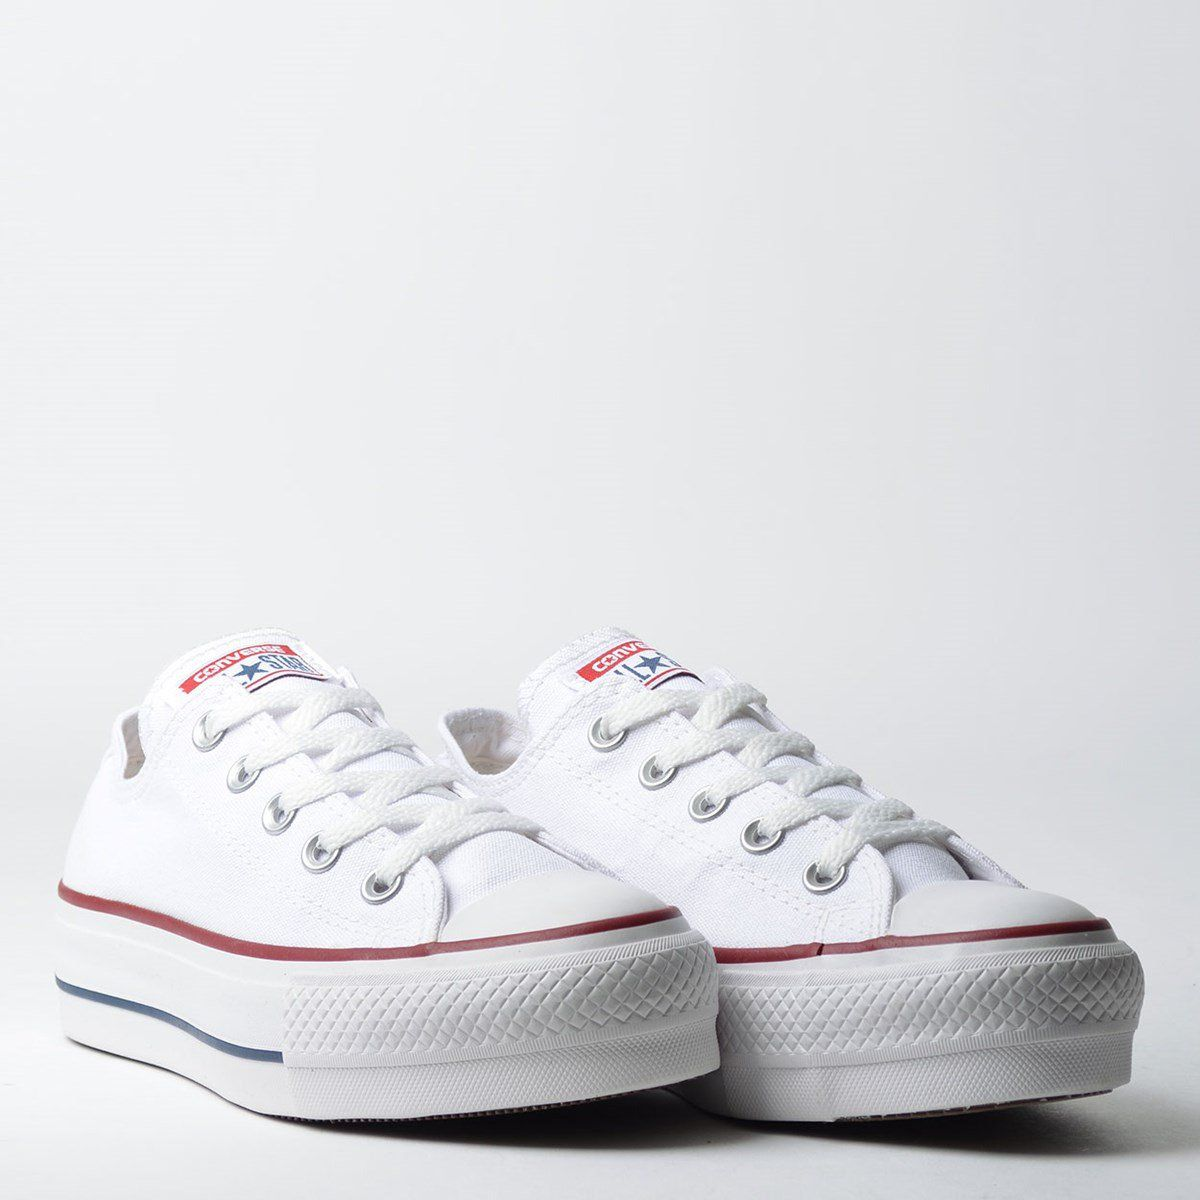 09945fa33b66a Tênis Converse Chuck Taylor All Star Platform Branco Marinho - Overcome  Clothing